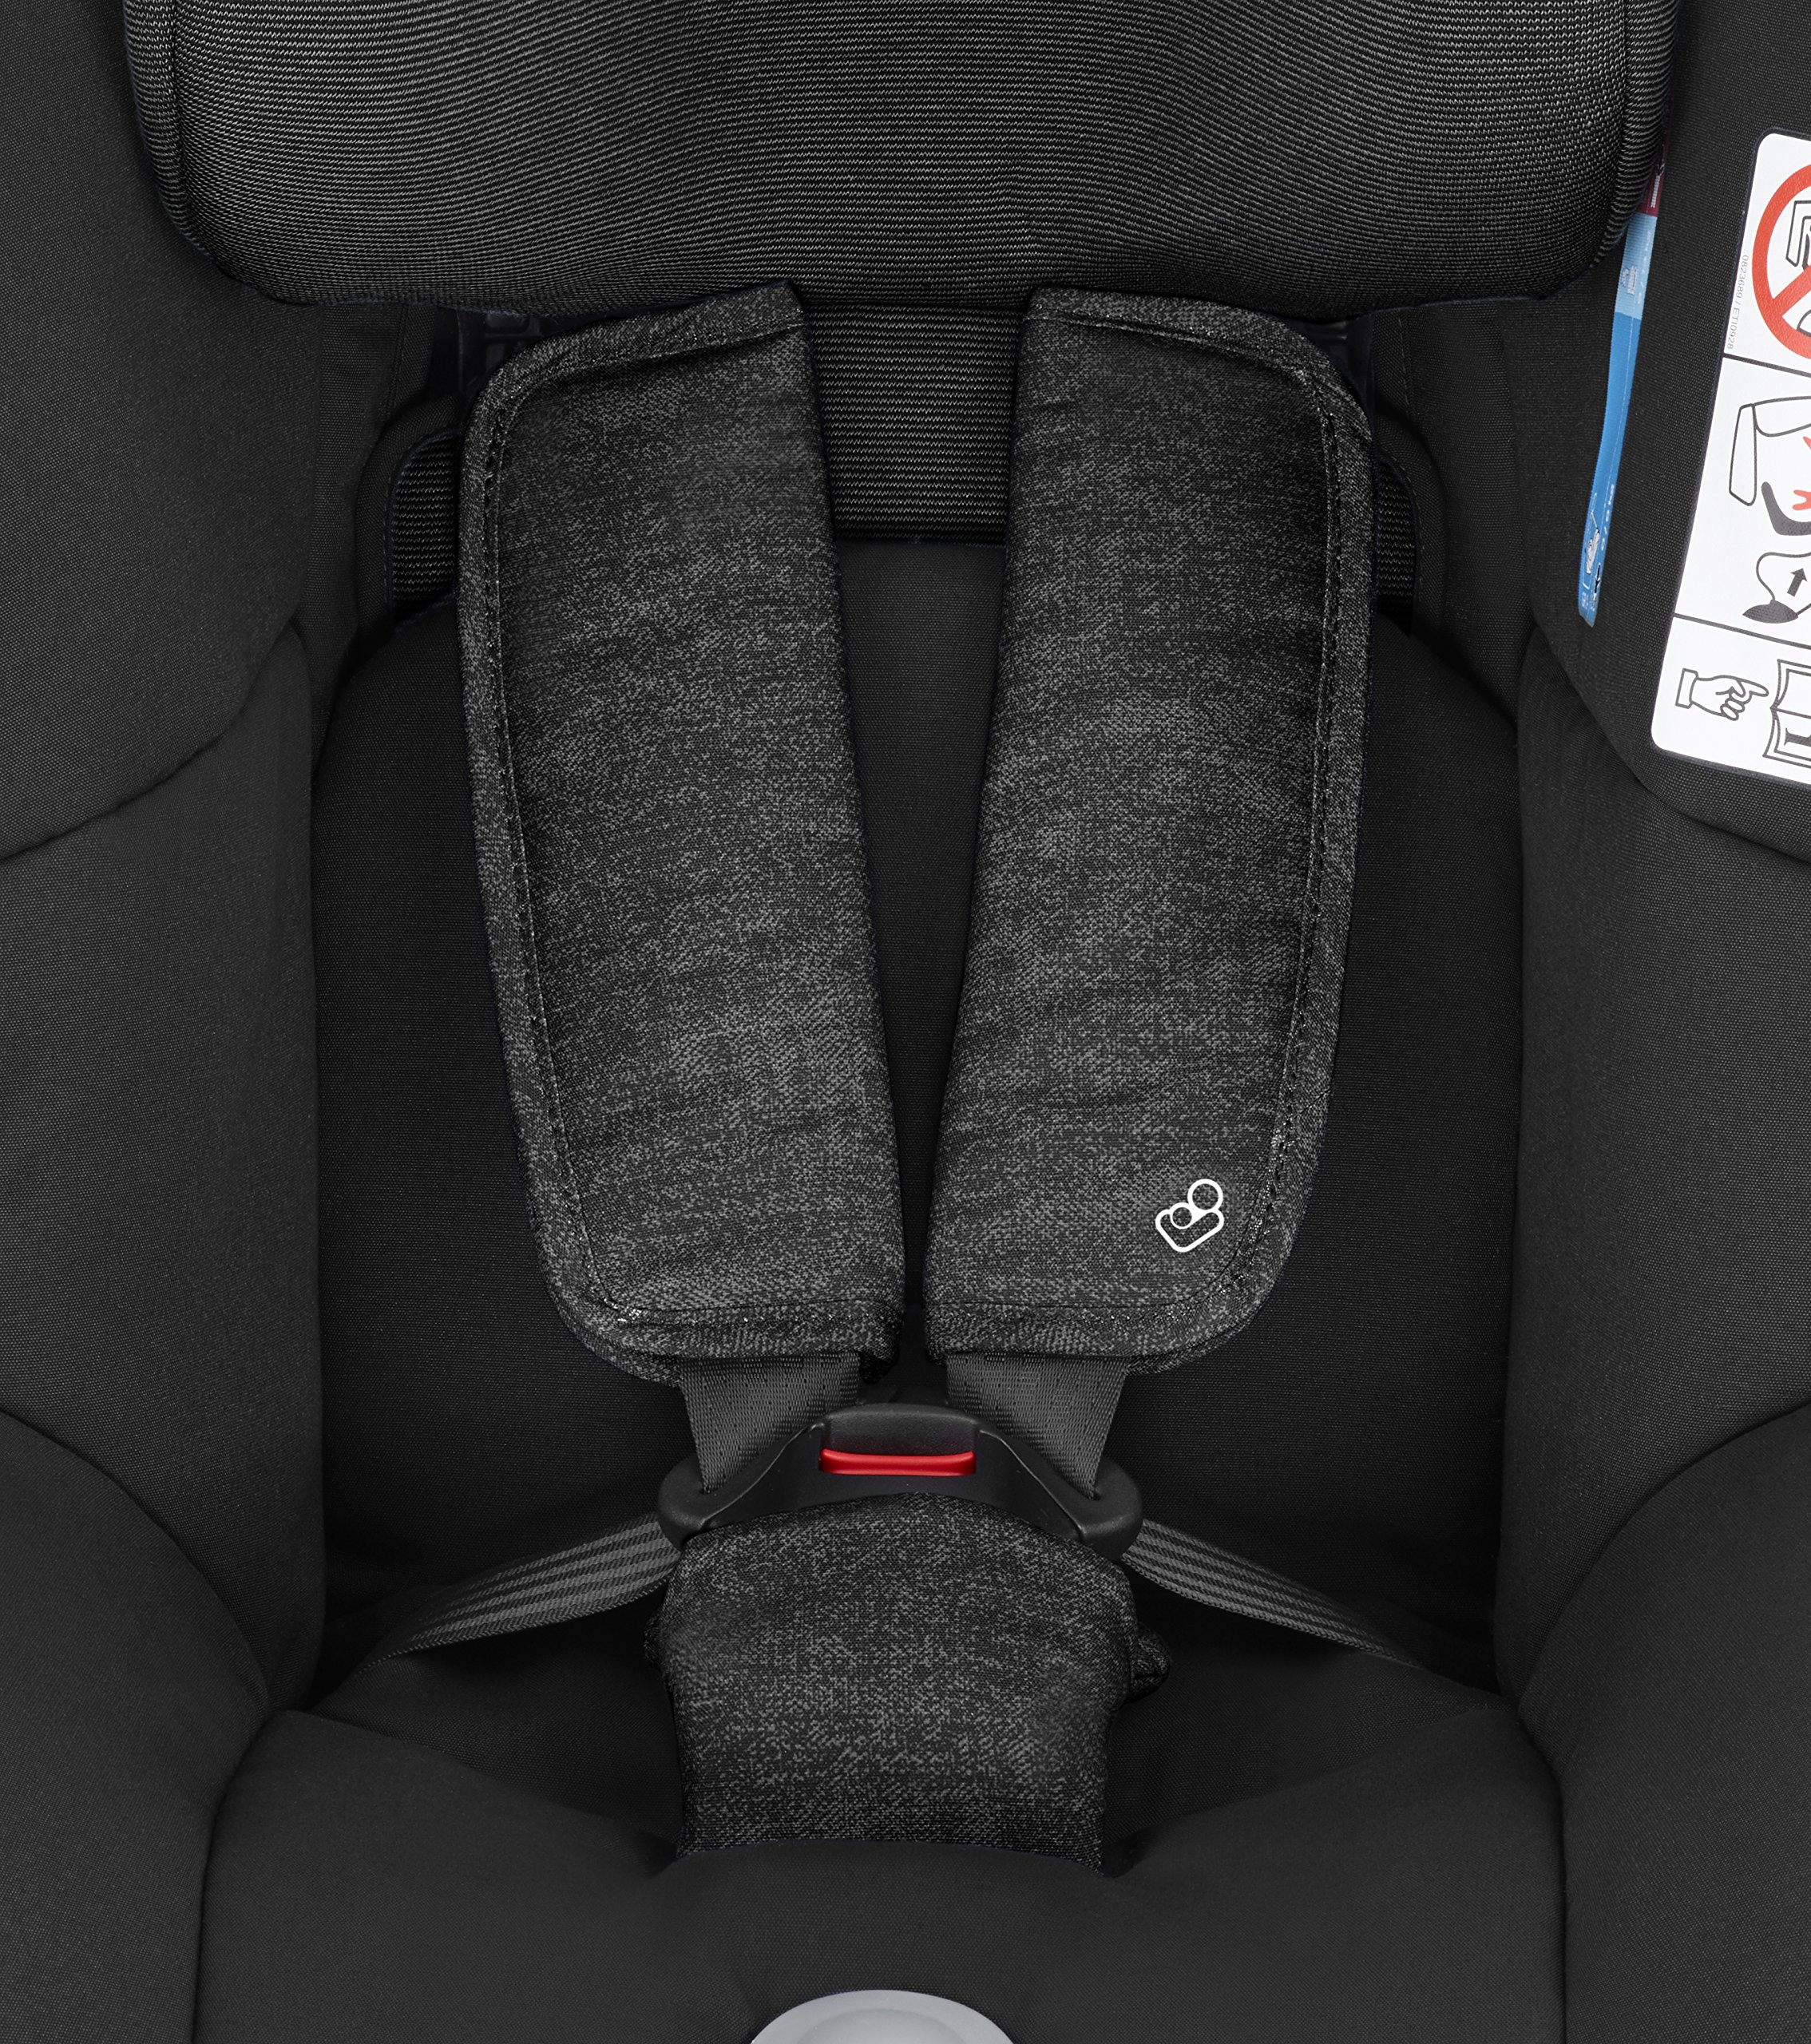 Maxi-Cosi MiloFix ISOFIX Combination Car Seat, Group 0+/1 car seat, Rear and Forward-facing, 0-4 years, 0-18 kg, Nomad Black Maxi-Cosi Rear and forward facing group 0+/1 car seat, suitable from birth to 18 kg (birth to 4 years) i-Size car seat, extended rearward-facing travel up until 18 months Padded seat and angled base provide additional leg room in rear-facing position 7